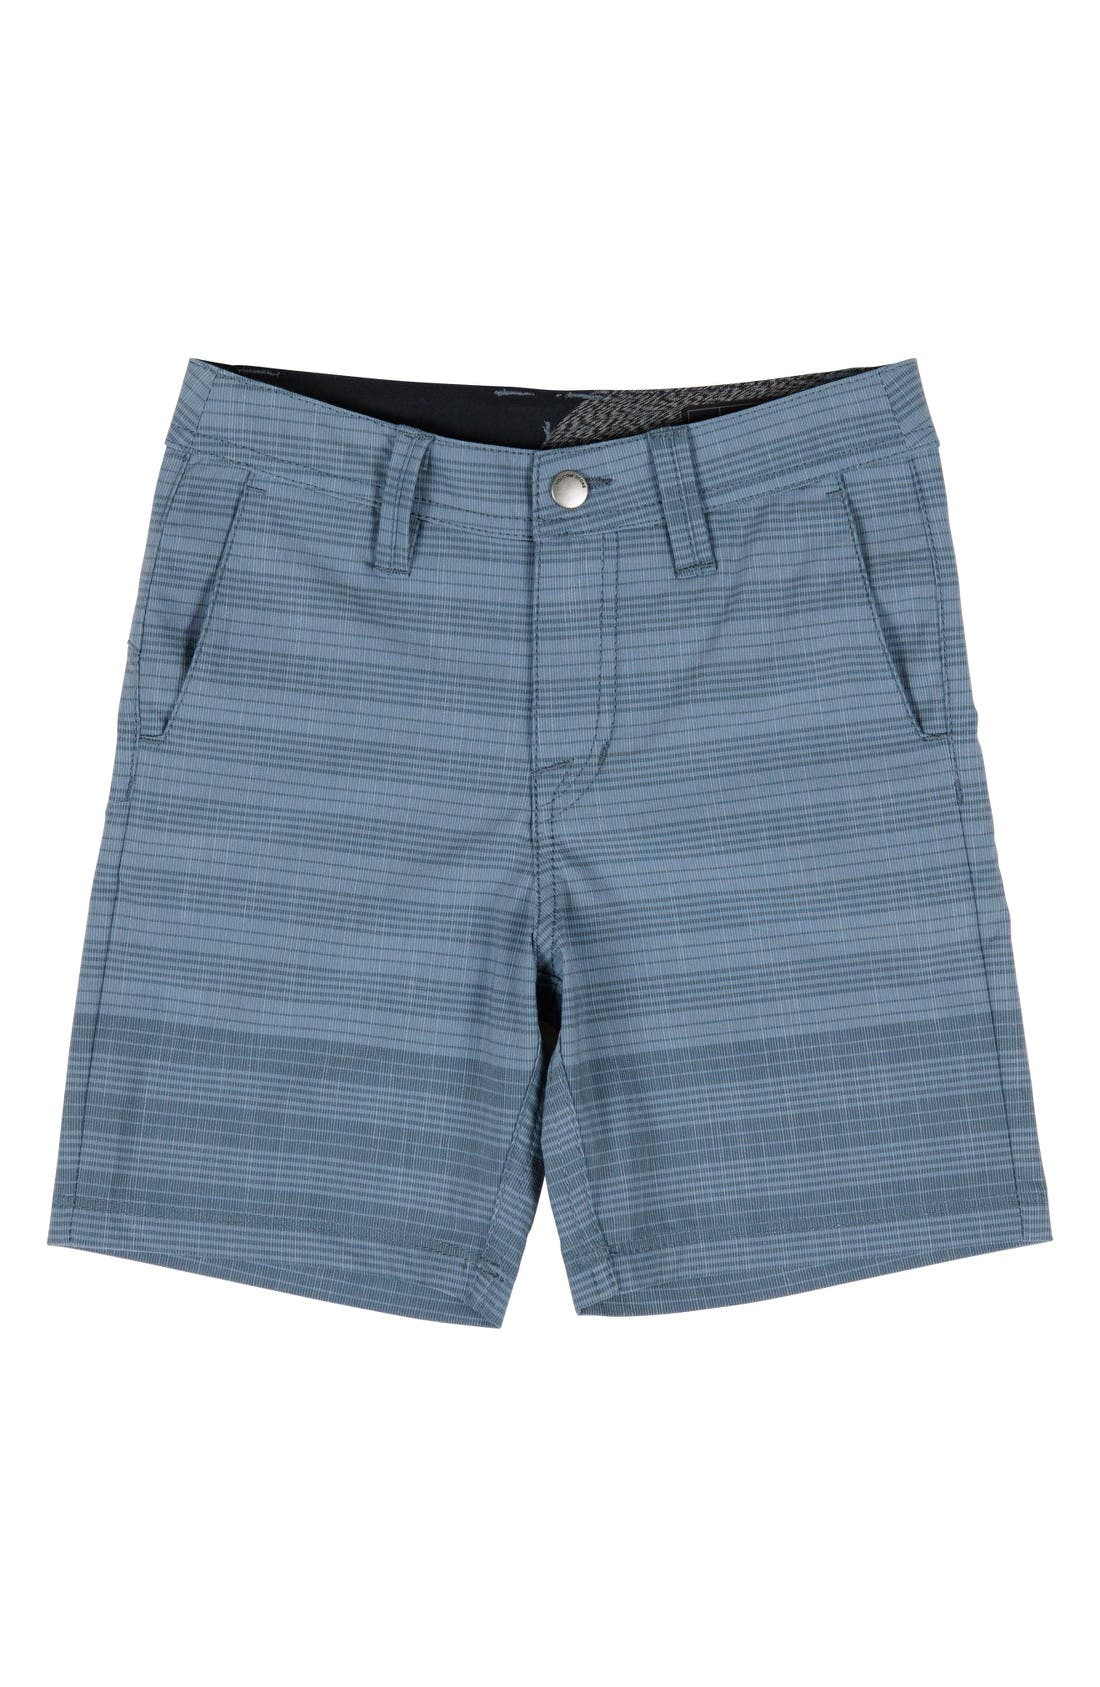 Main Image - Volcom Surf N' Turf Hybrid Shorts (Toddler Boys & Little Boys)